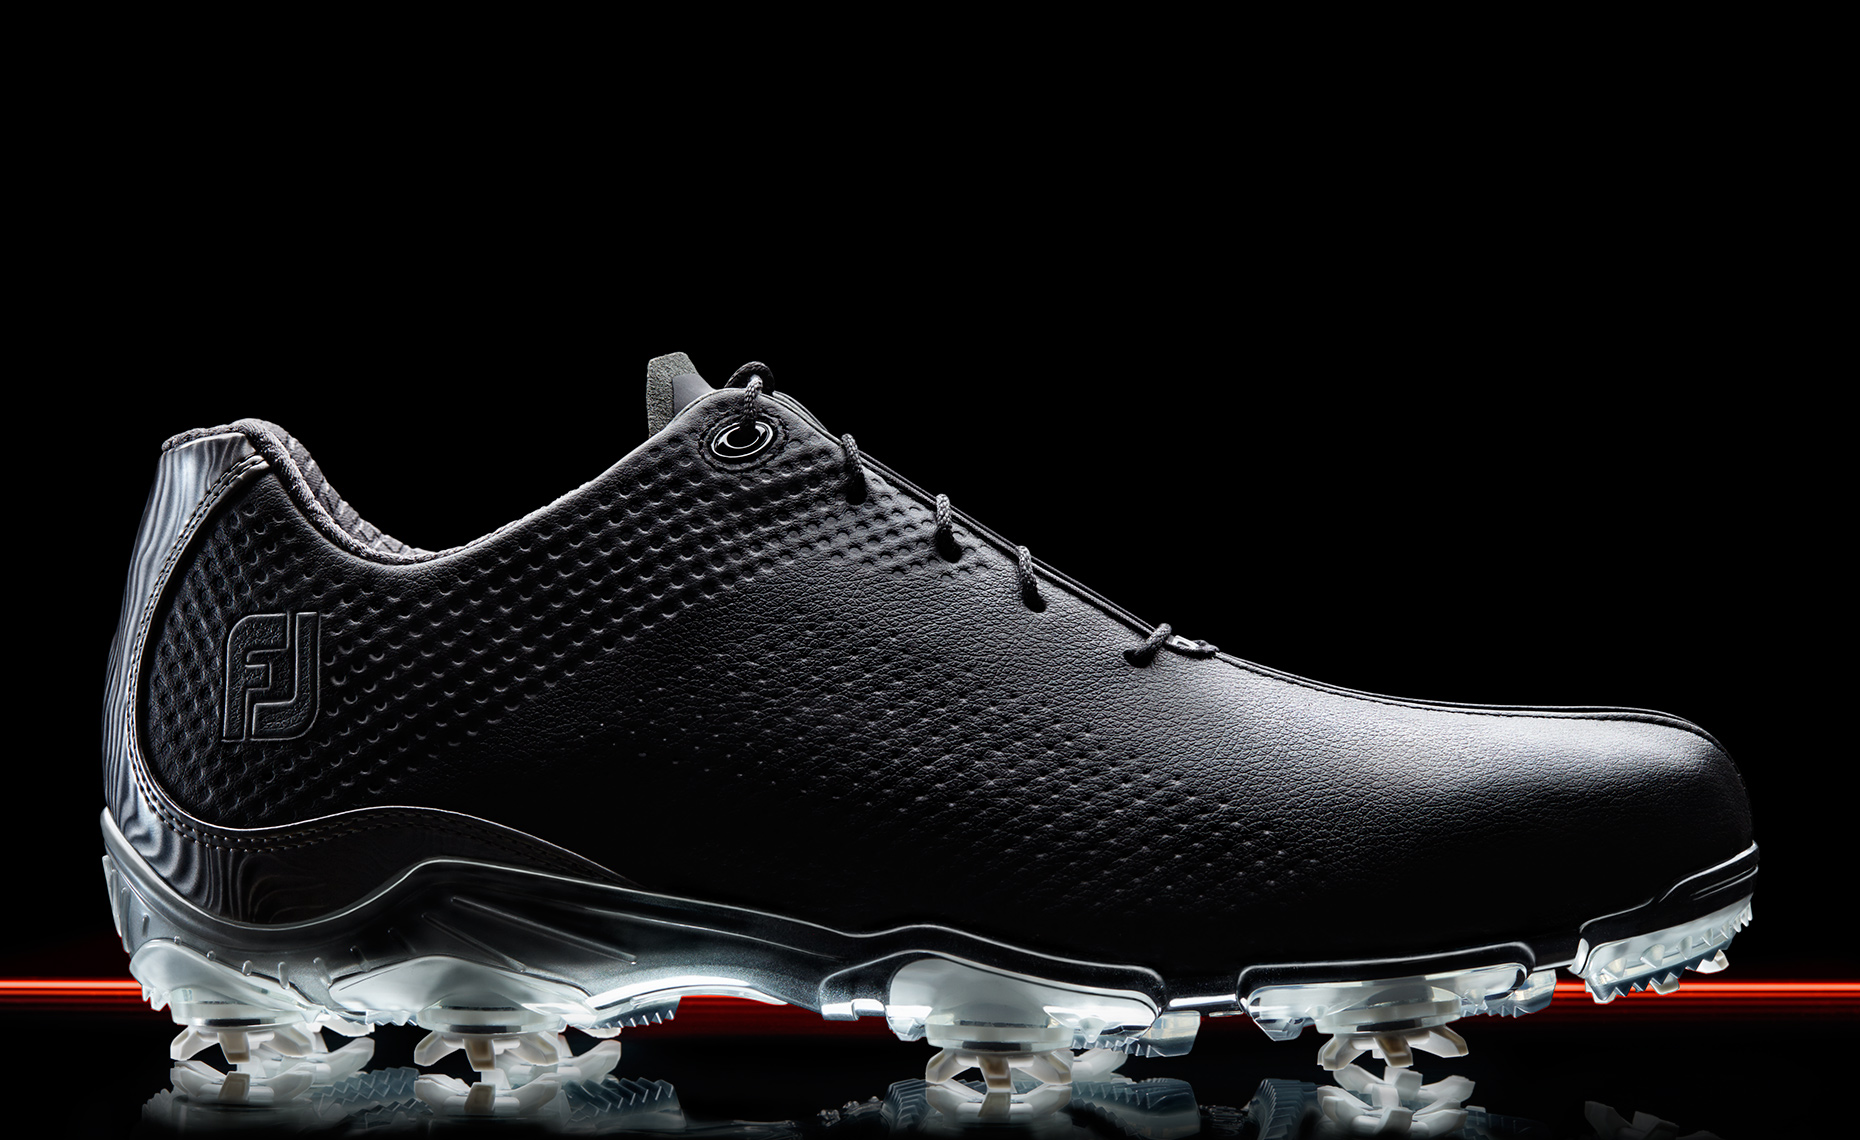 FootJoy Golf shoe